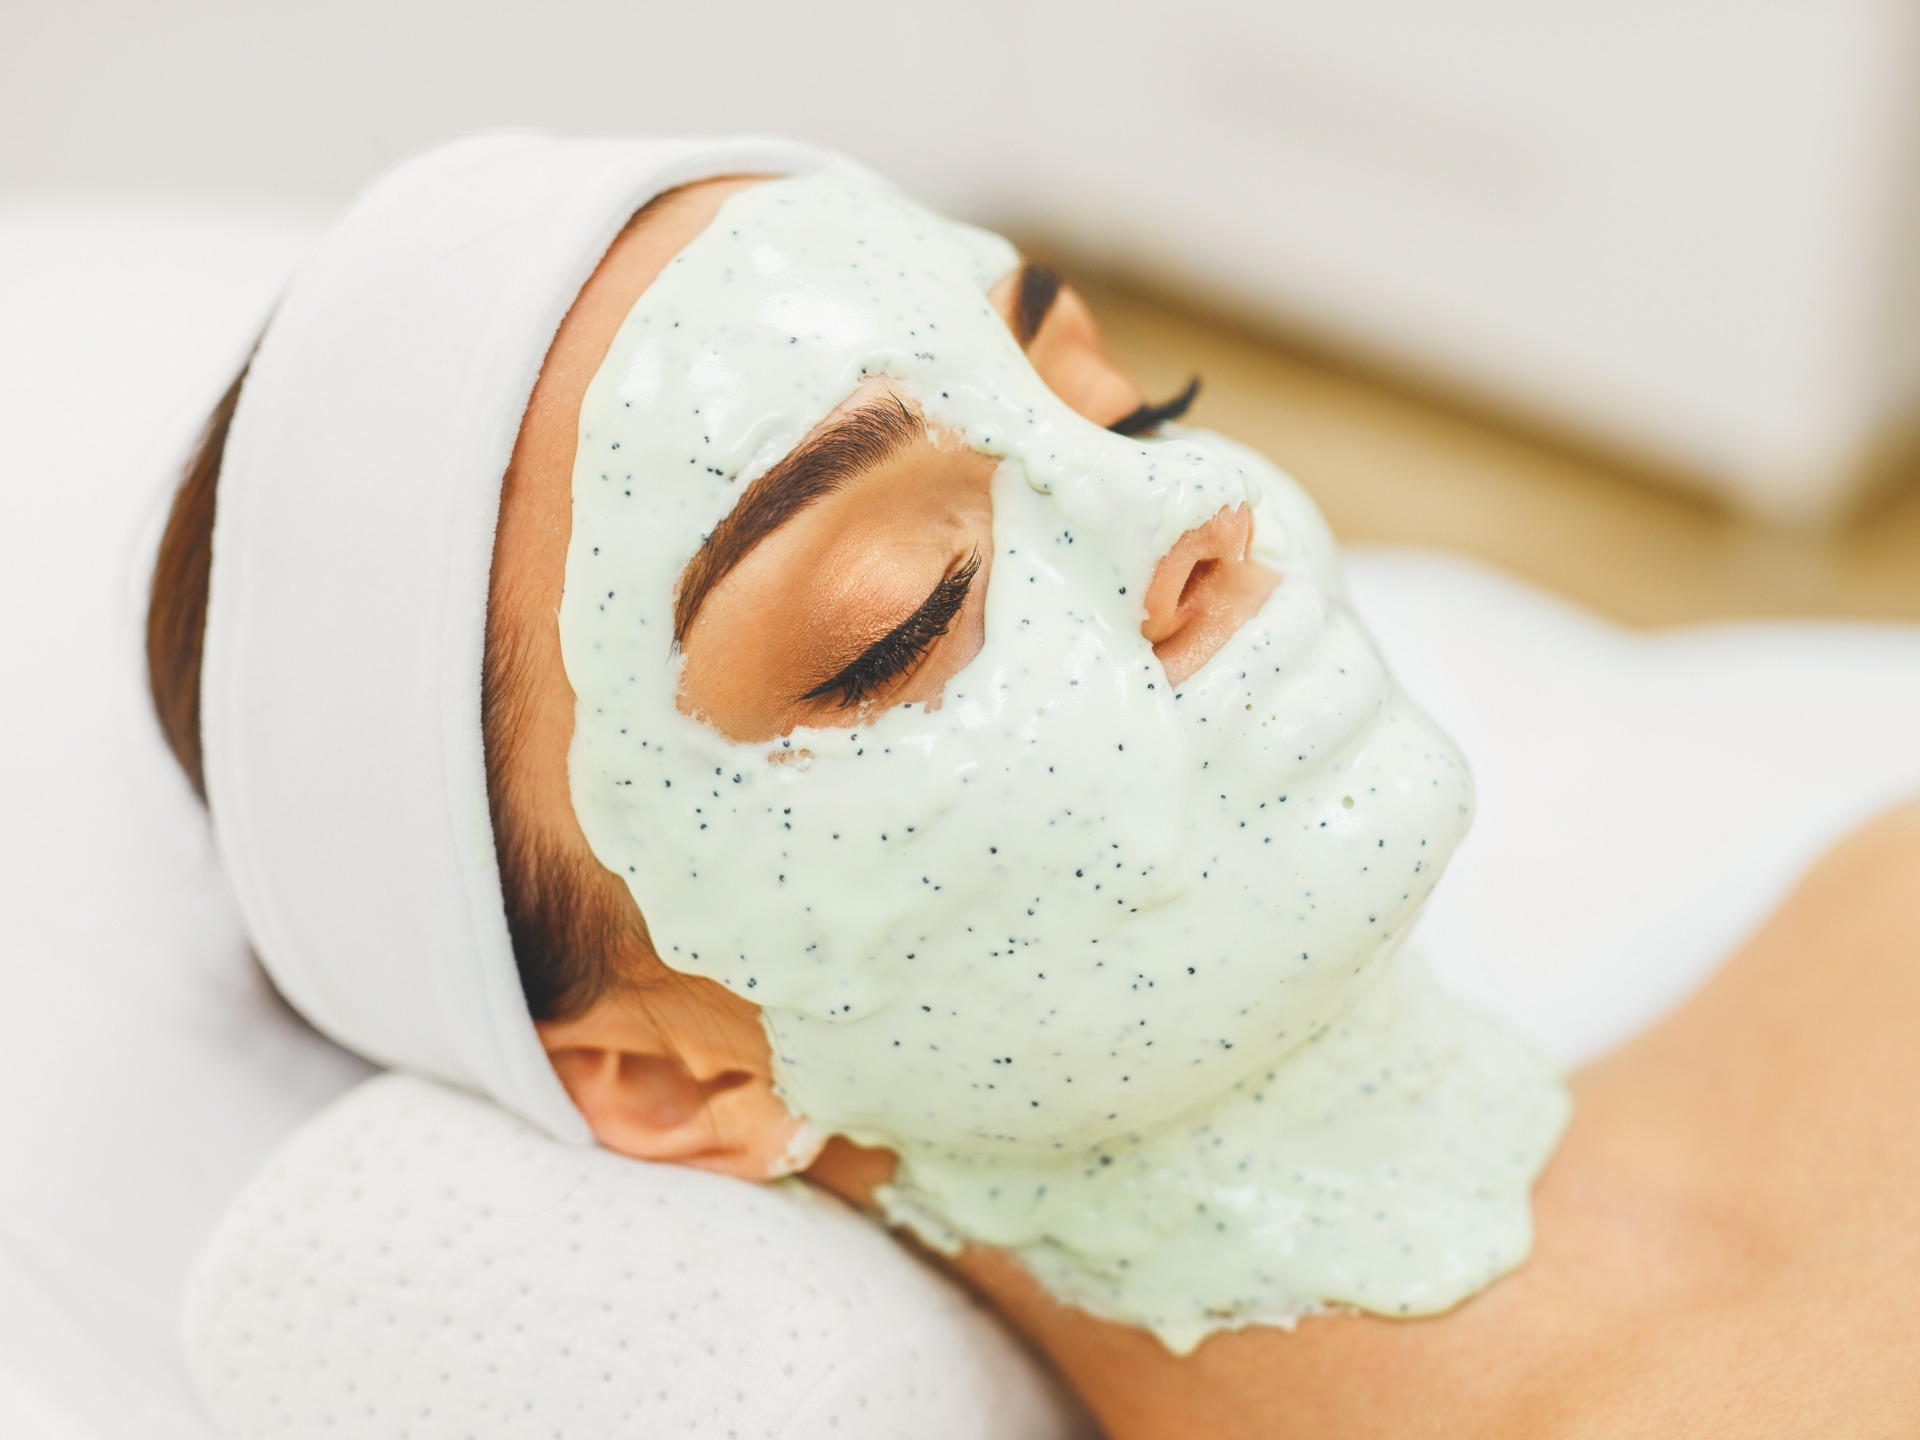 Woman Skin Care. Closeup Of Beautiful Girl With Cosmetic Mask On Facial Skin In Beauty Salon. Young Female With Face Covered With Green Moisturizing Alginate Mask. Beauty Treatment. High Resolution